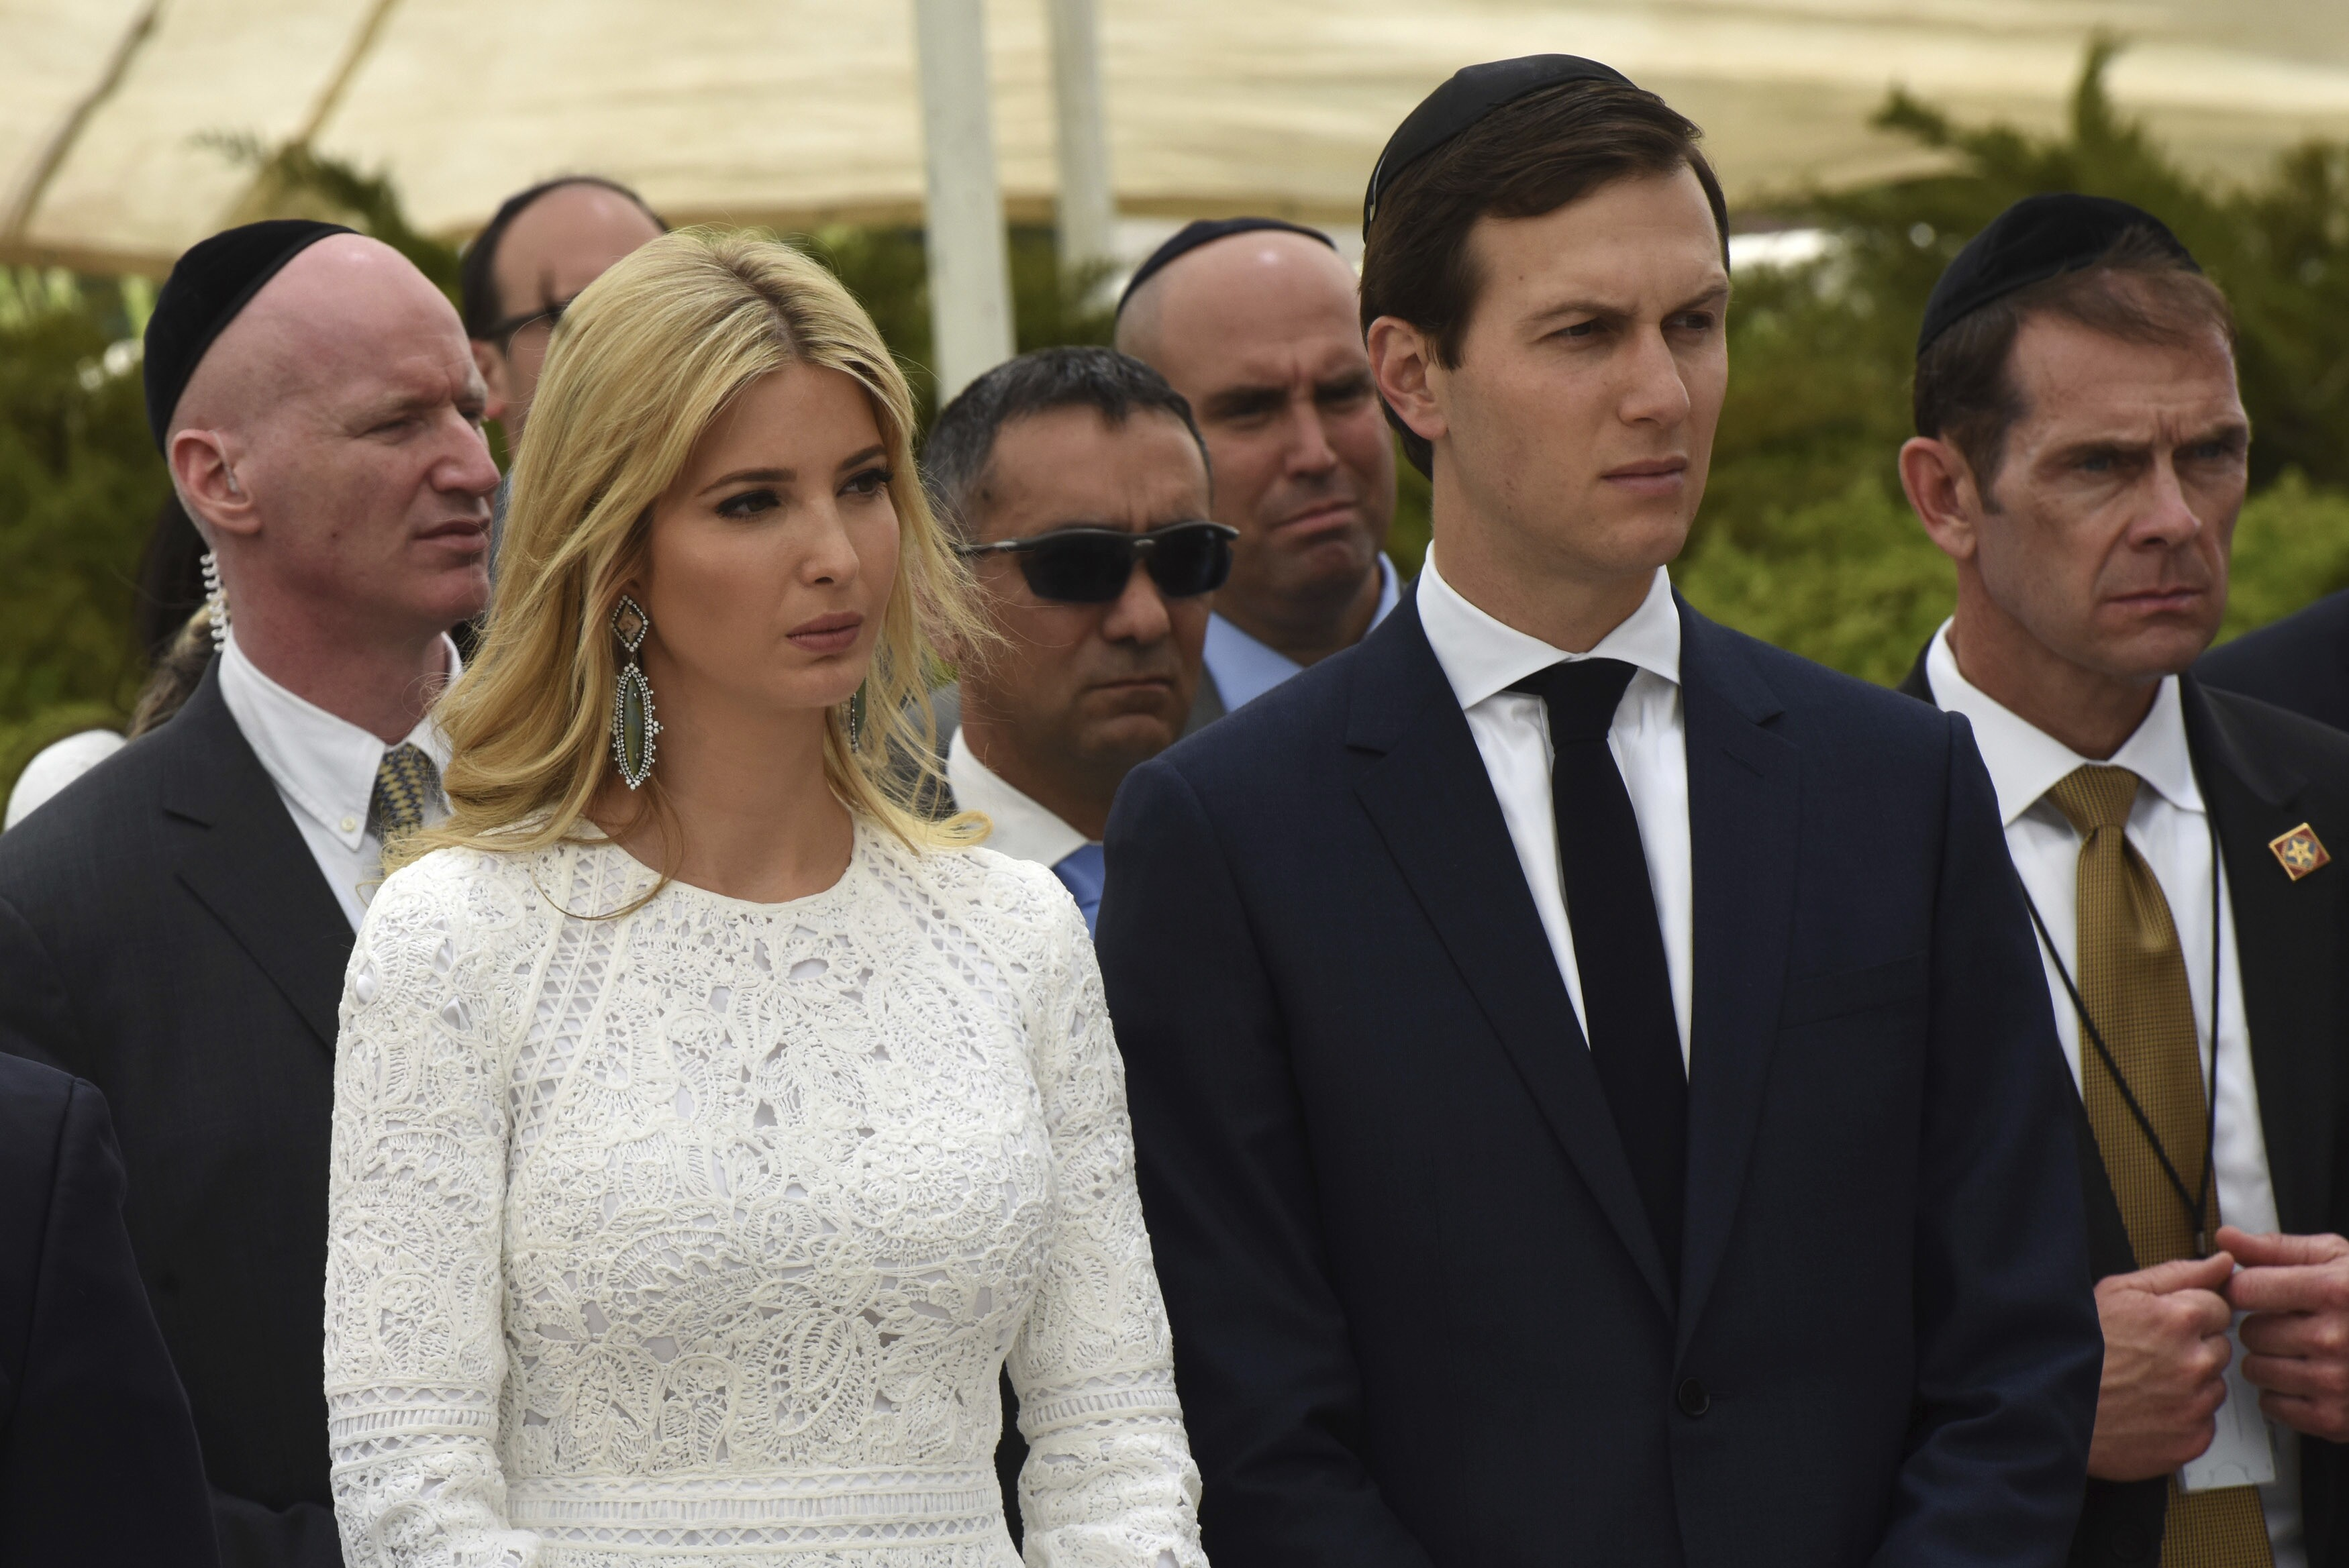 White House Explains Why Jared Kushner And Ivanka Trump Did Not Attend Rose Garden Announcement